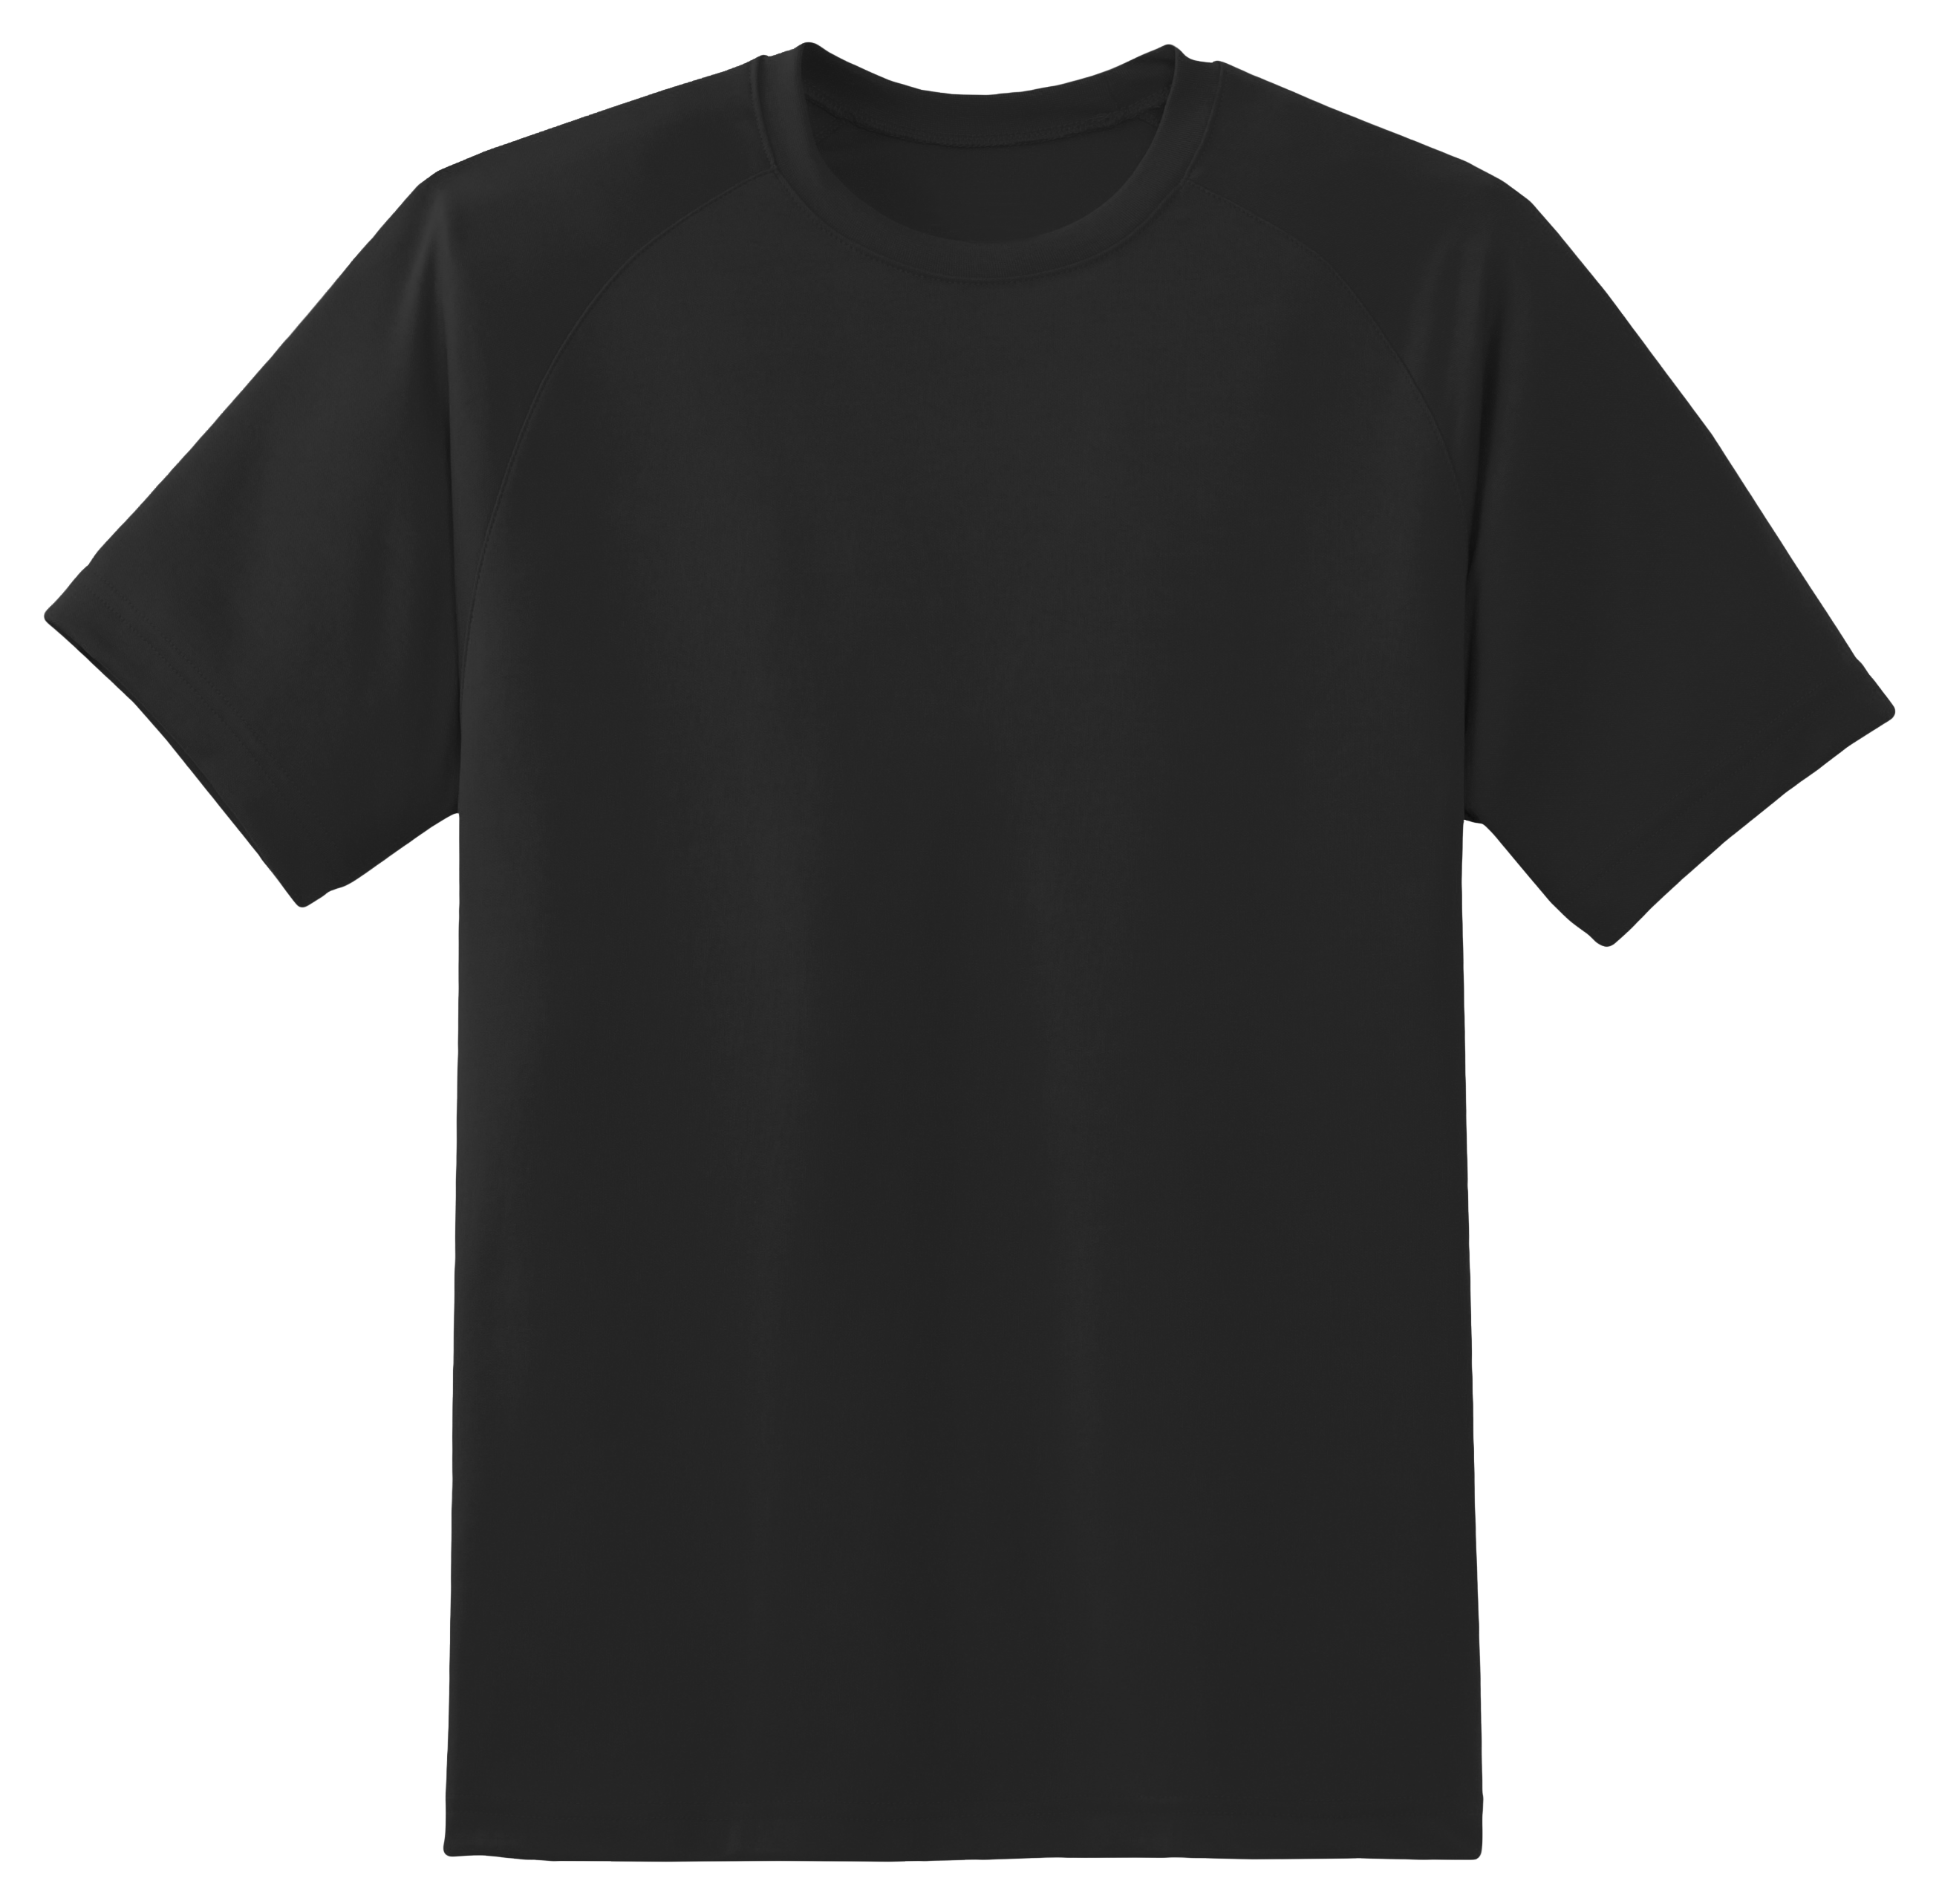 kaos polos, black shirt png image transparent #32575